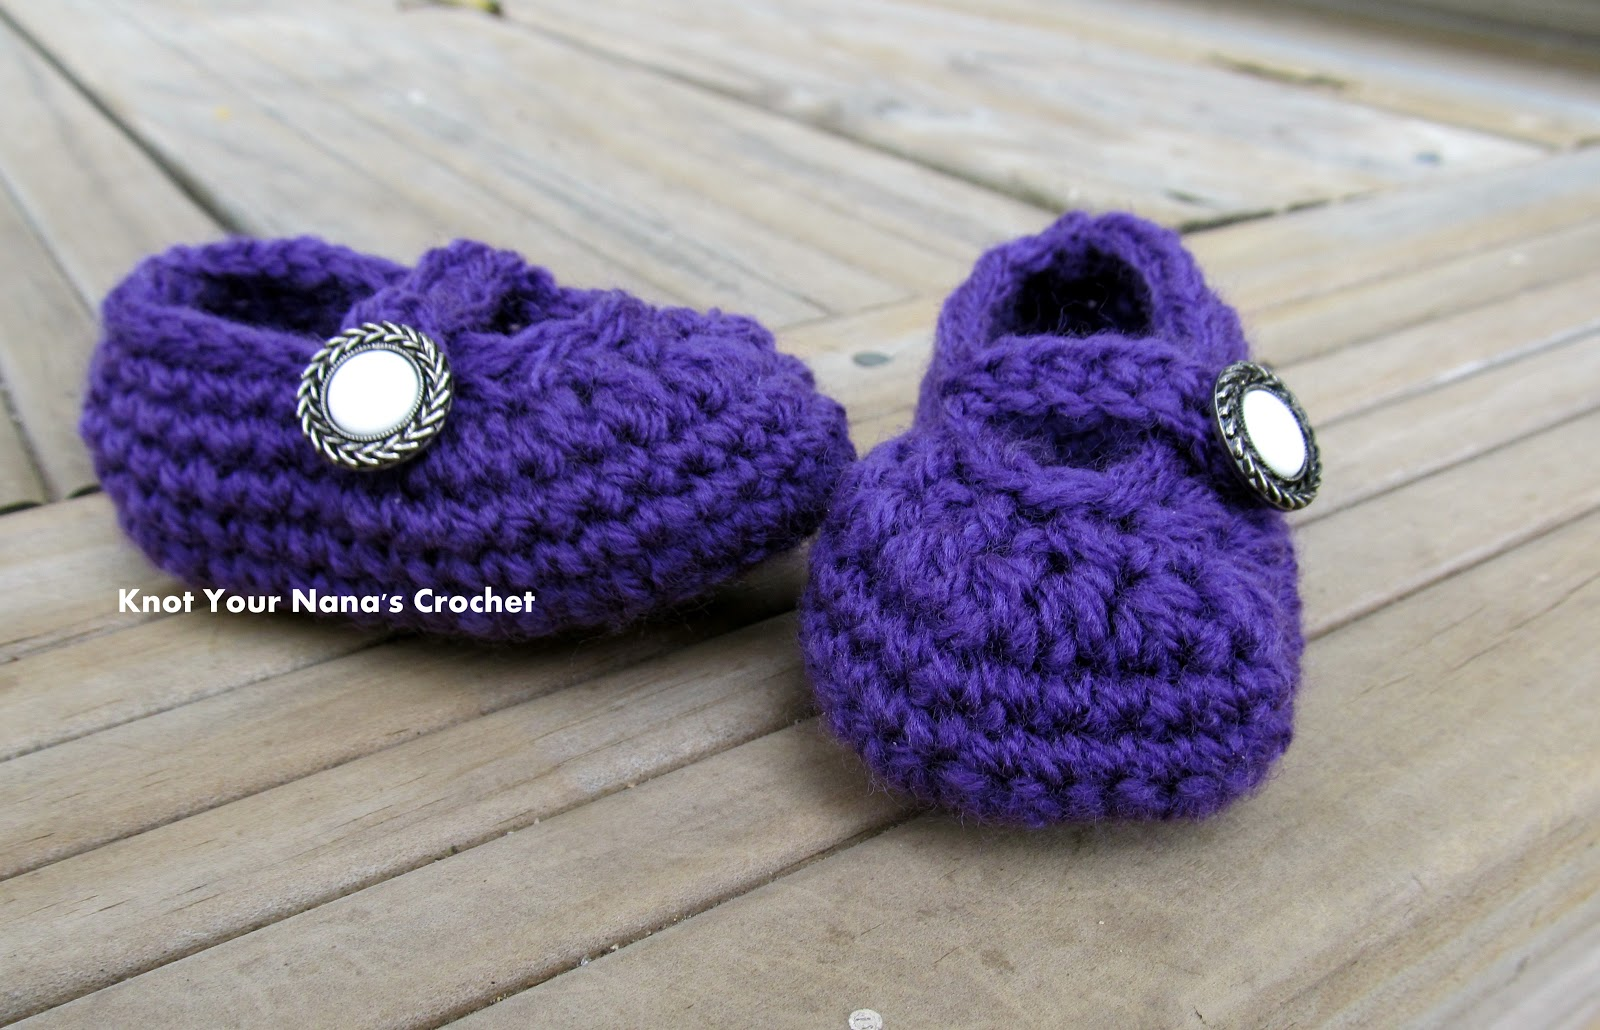 Knot Your Nanas Crochet: Crochet booties with strap: Free ...